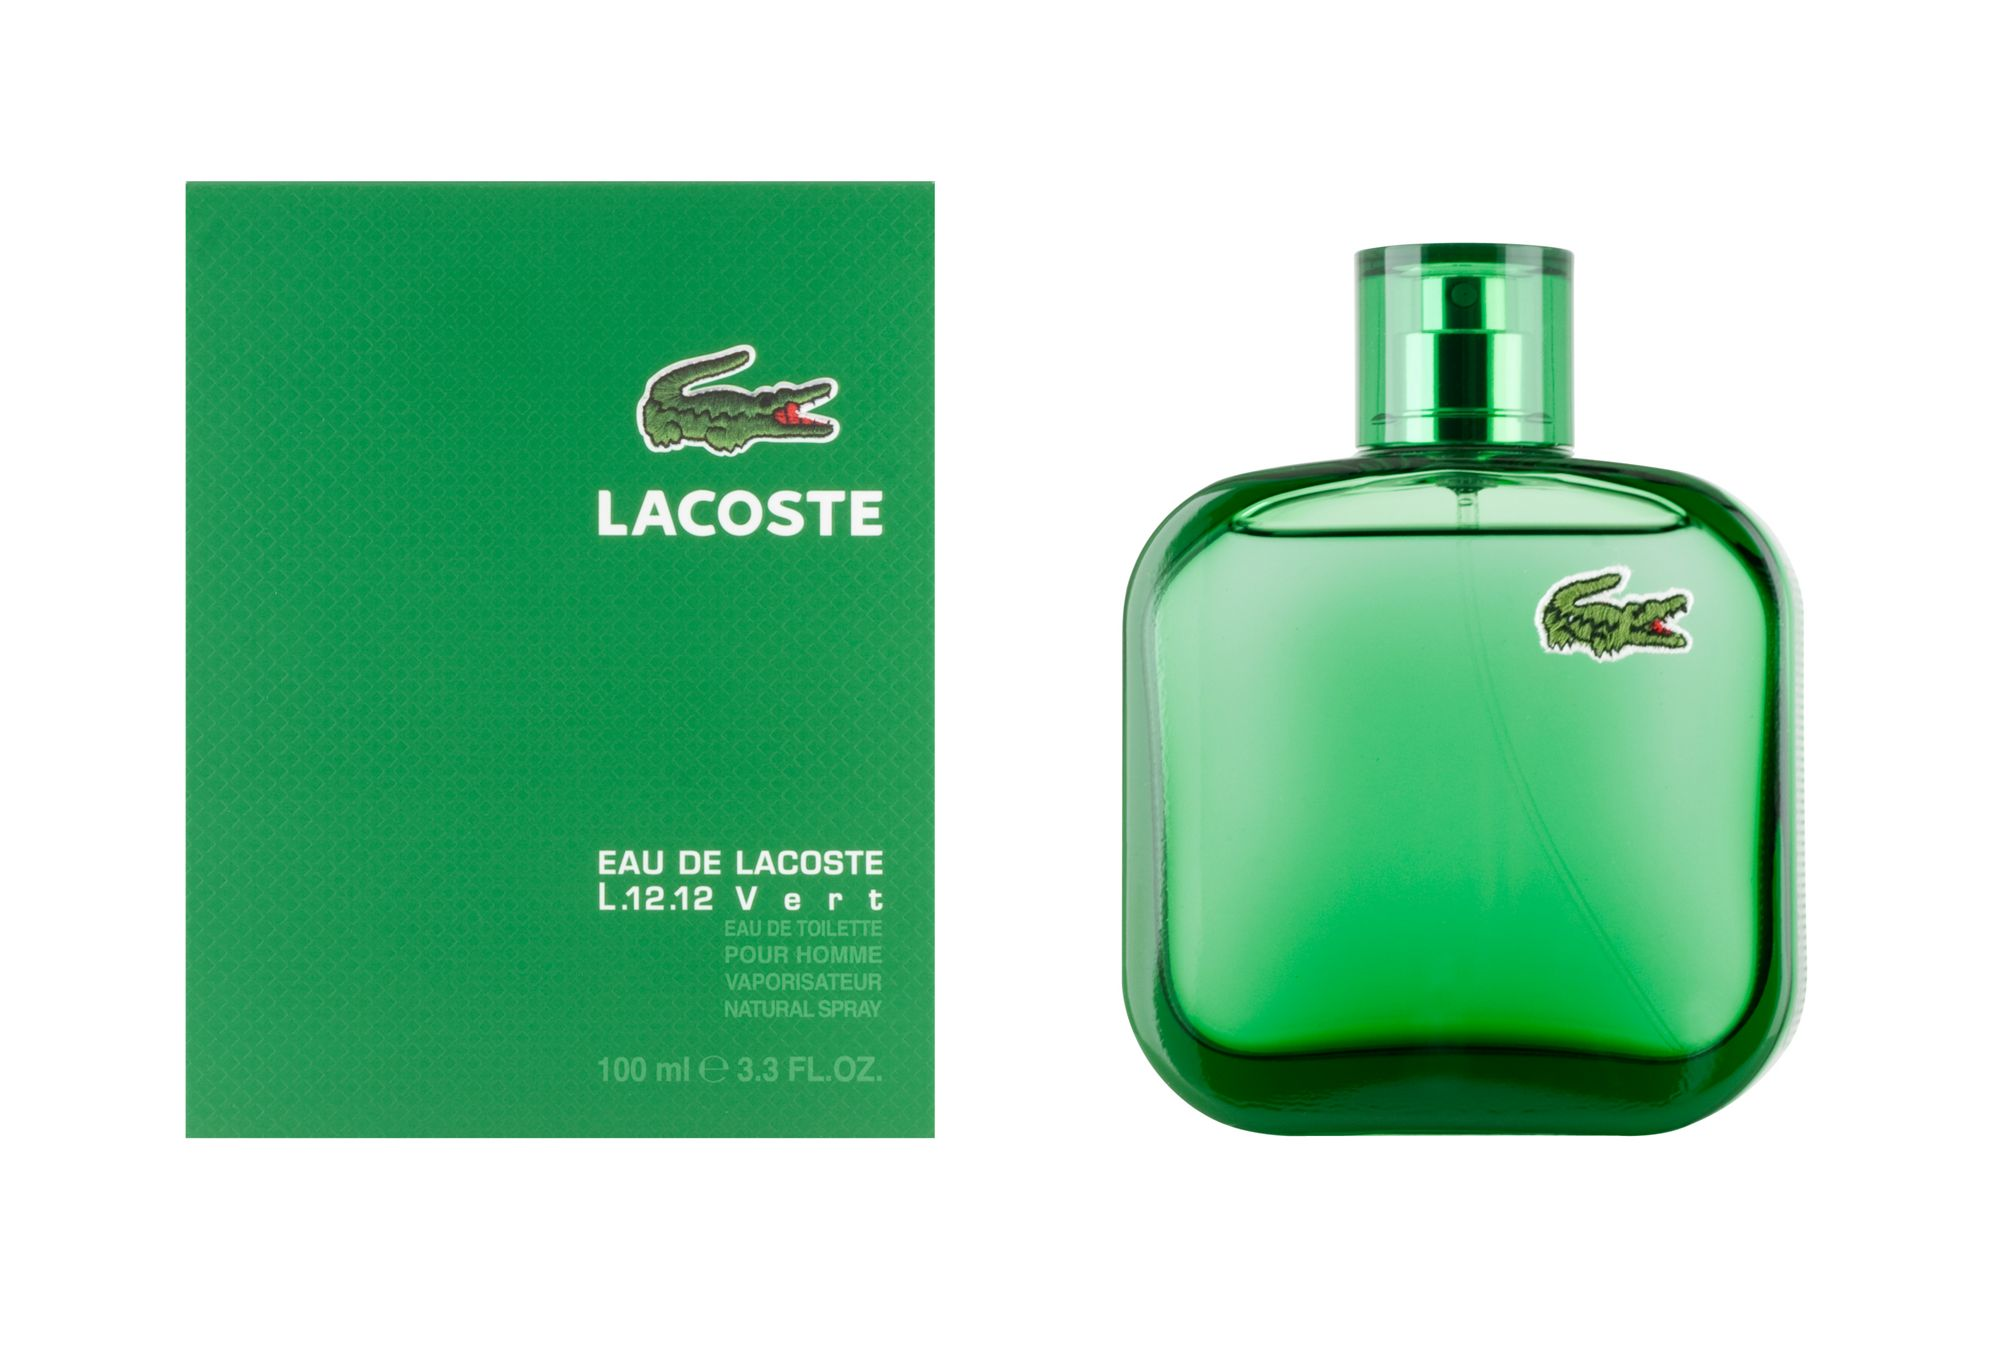 promotion parfum eau de lacoste vert de lacoste eau de toilette 100ml chez mon parfum. Black Bedroom Furniture Sets. Home Design Ideas